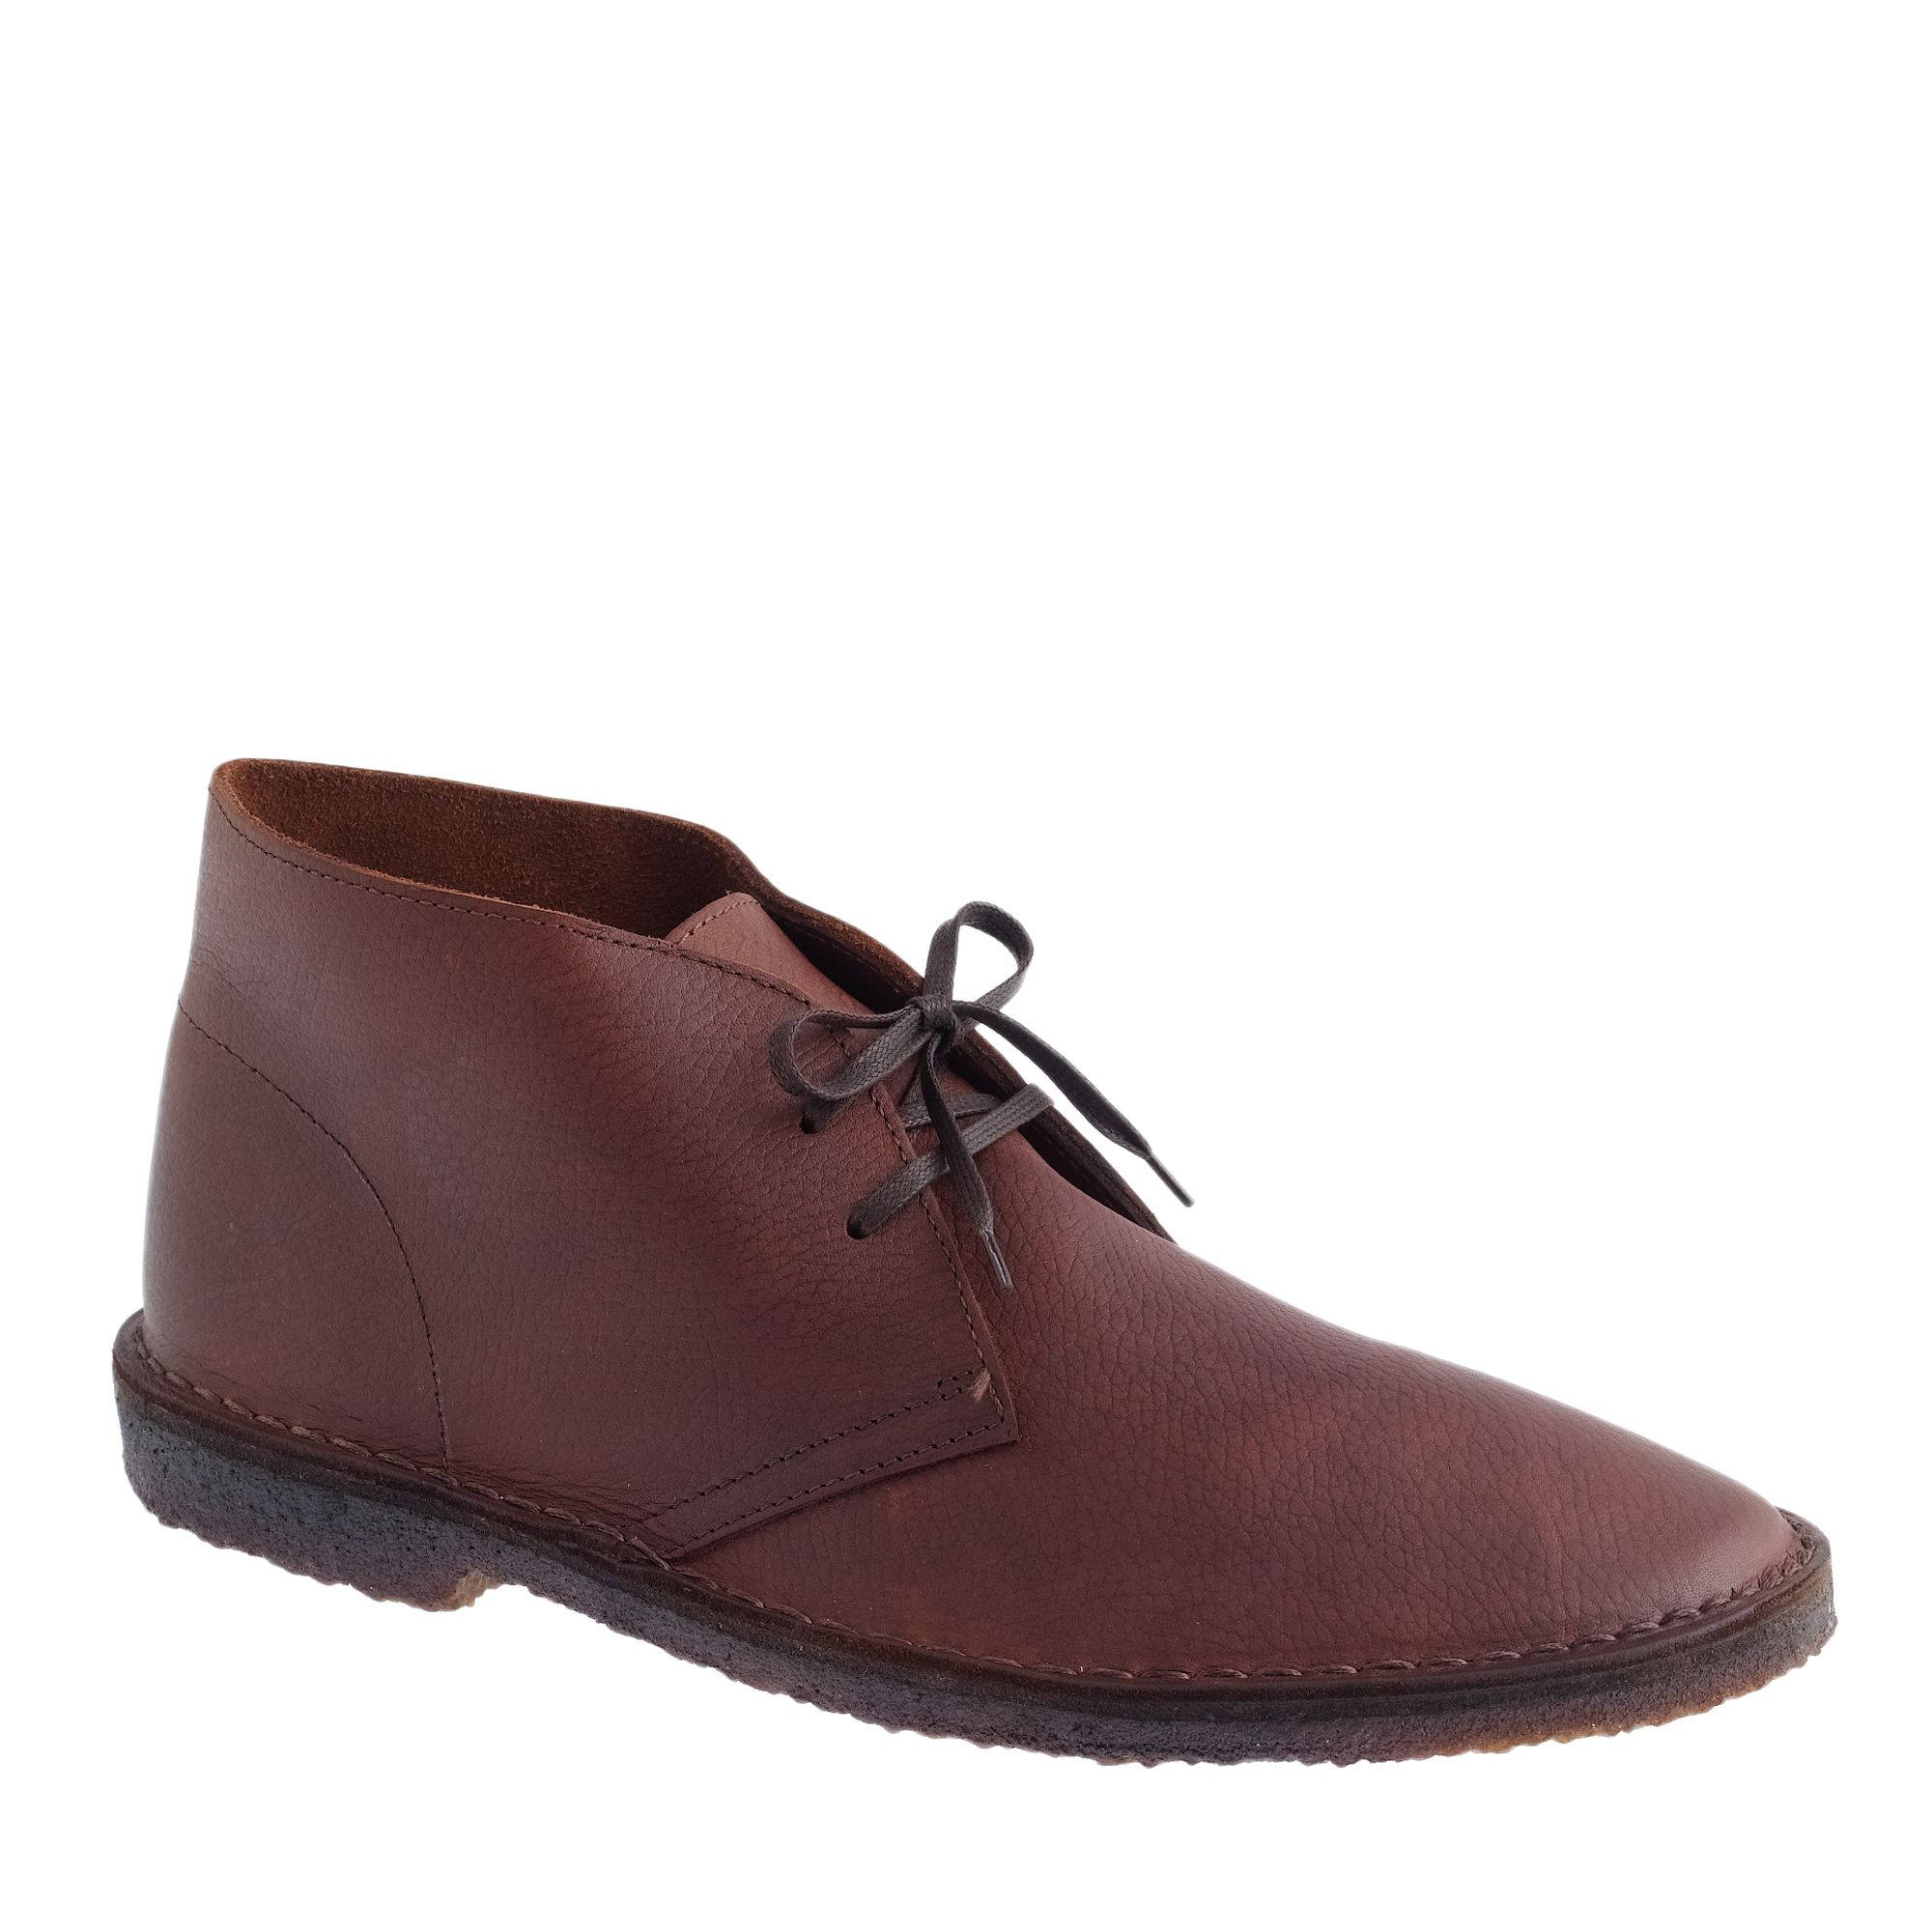 j crew classic macalister boots in leather in brown